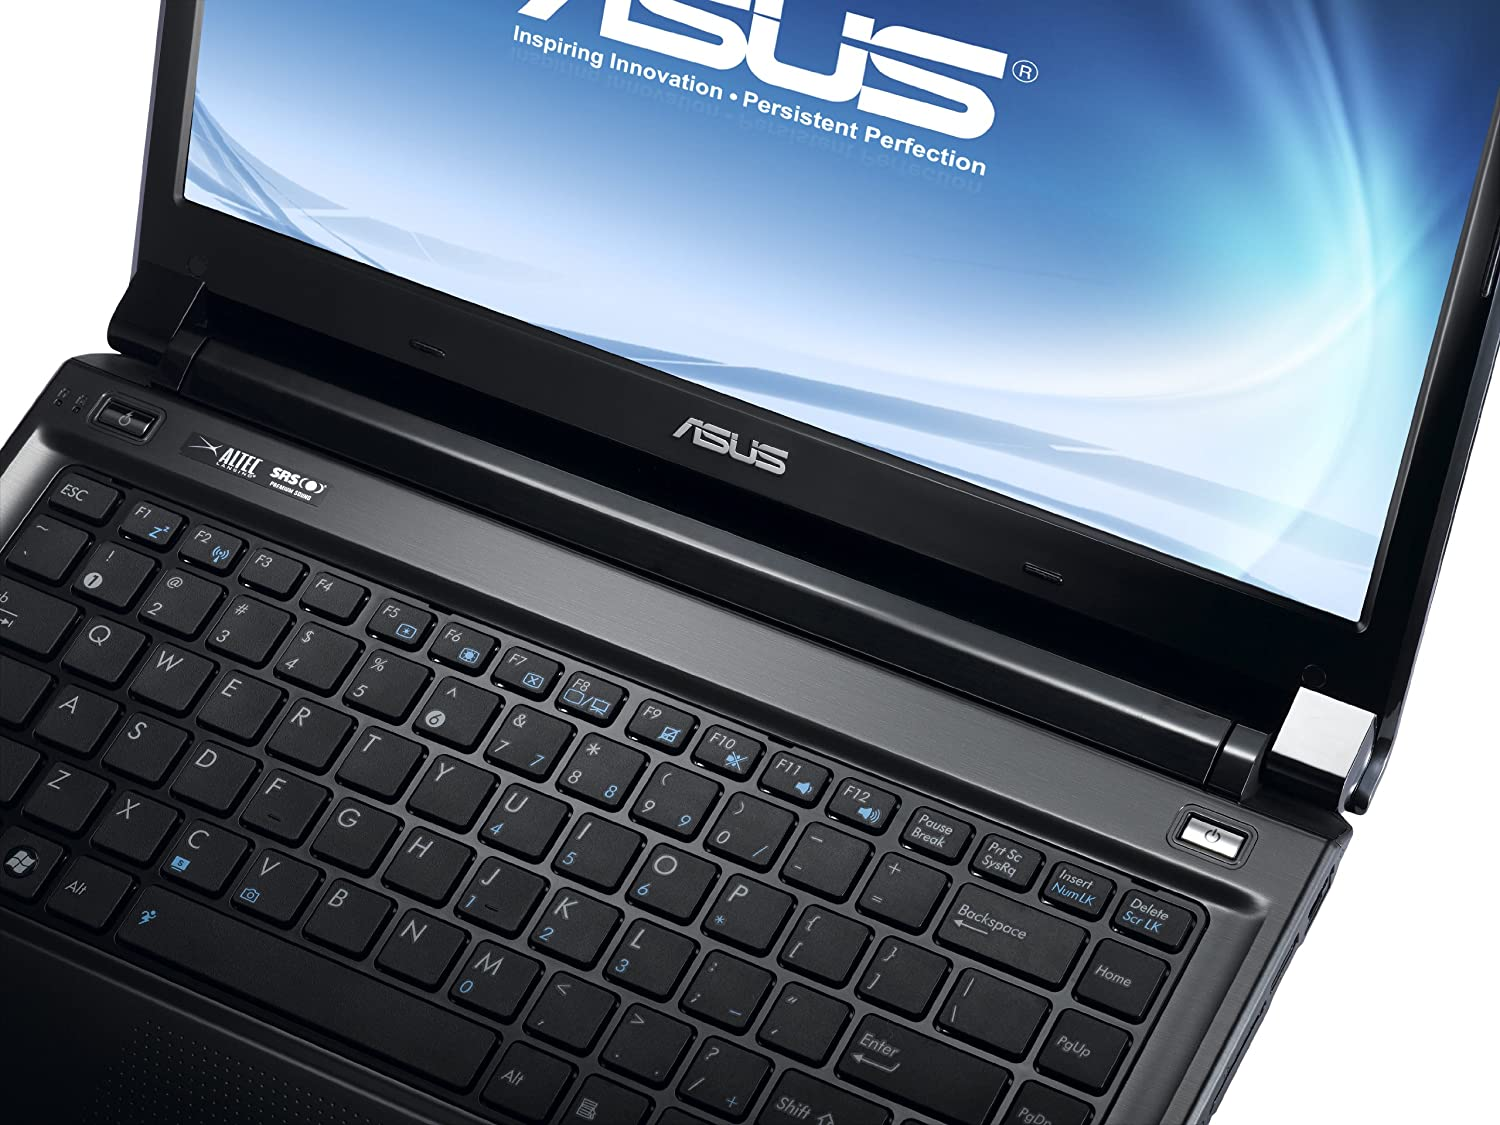 Asus UL80JT Rapid Storage Drivers PC